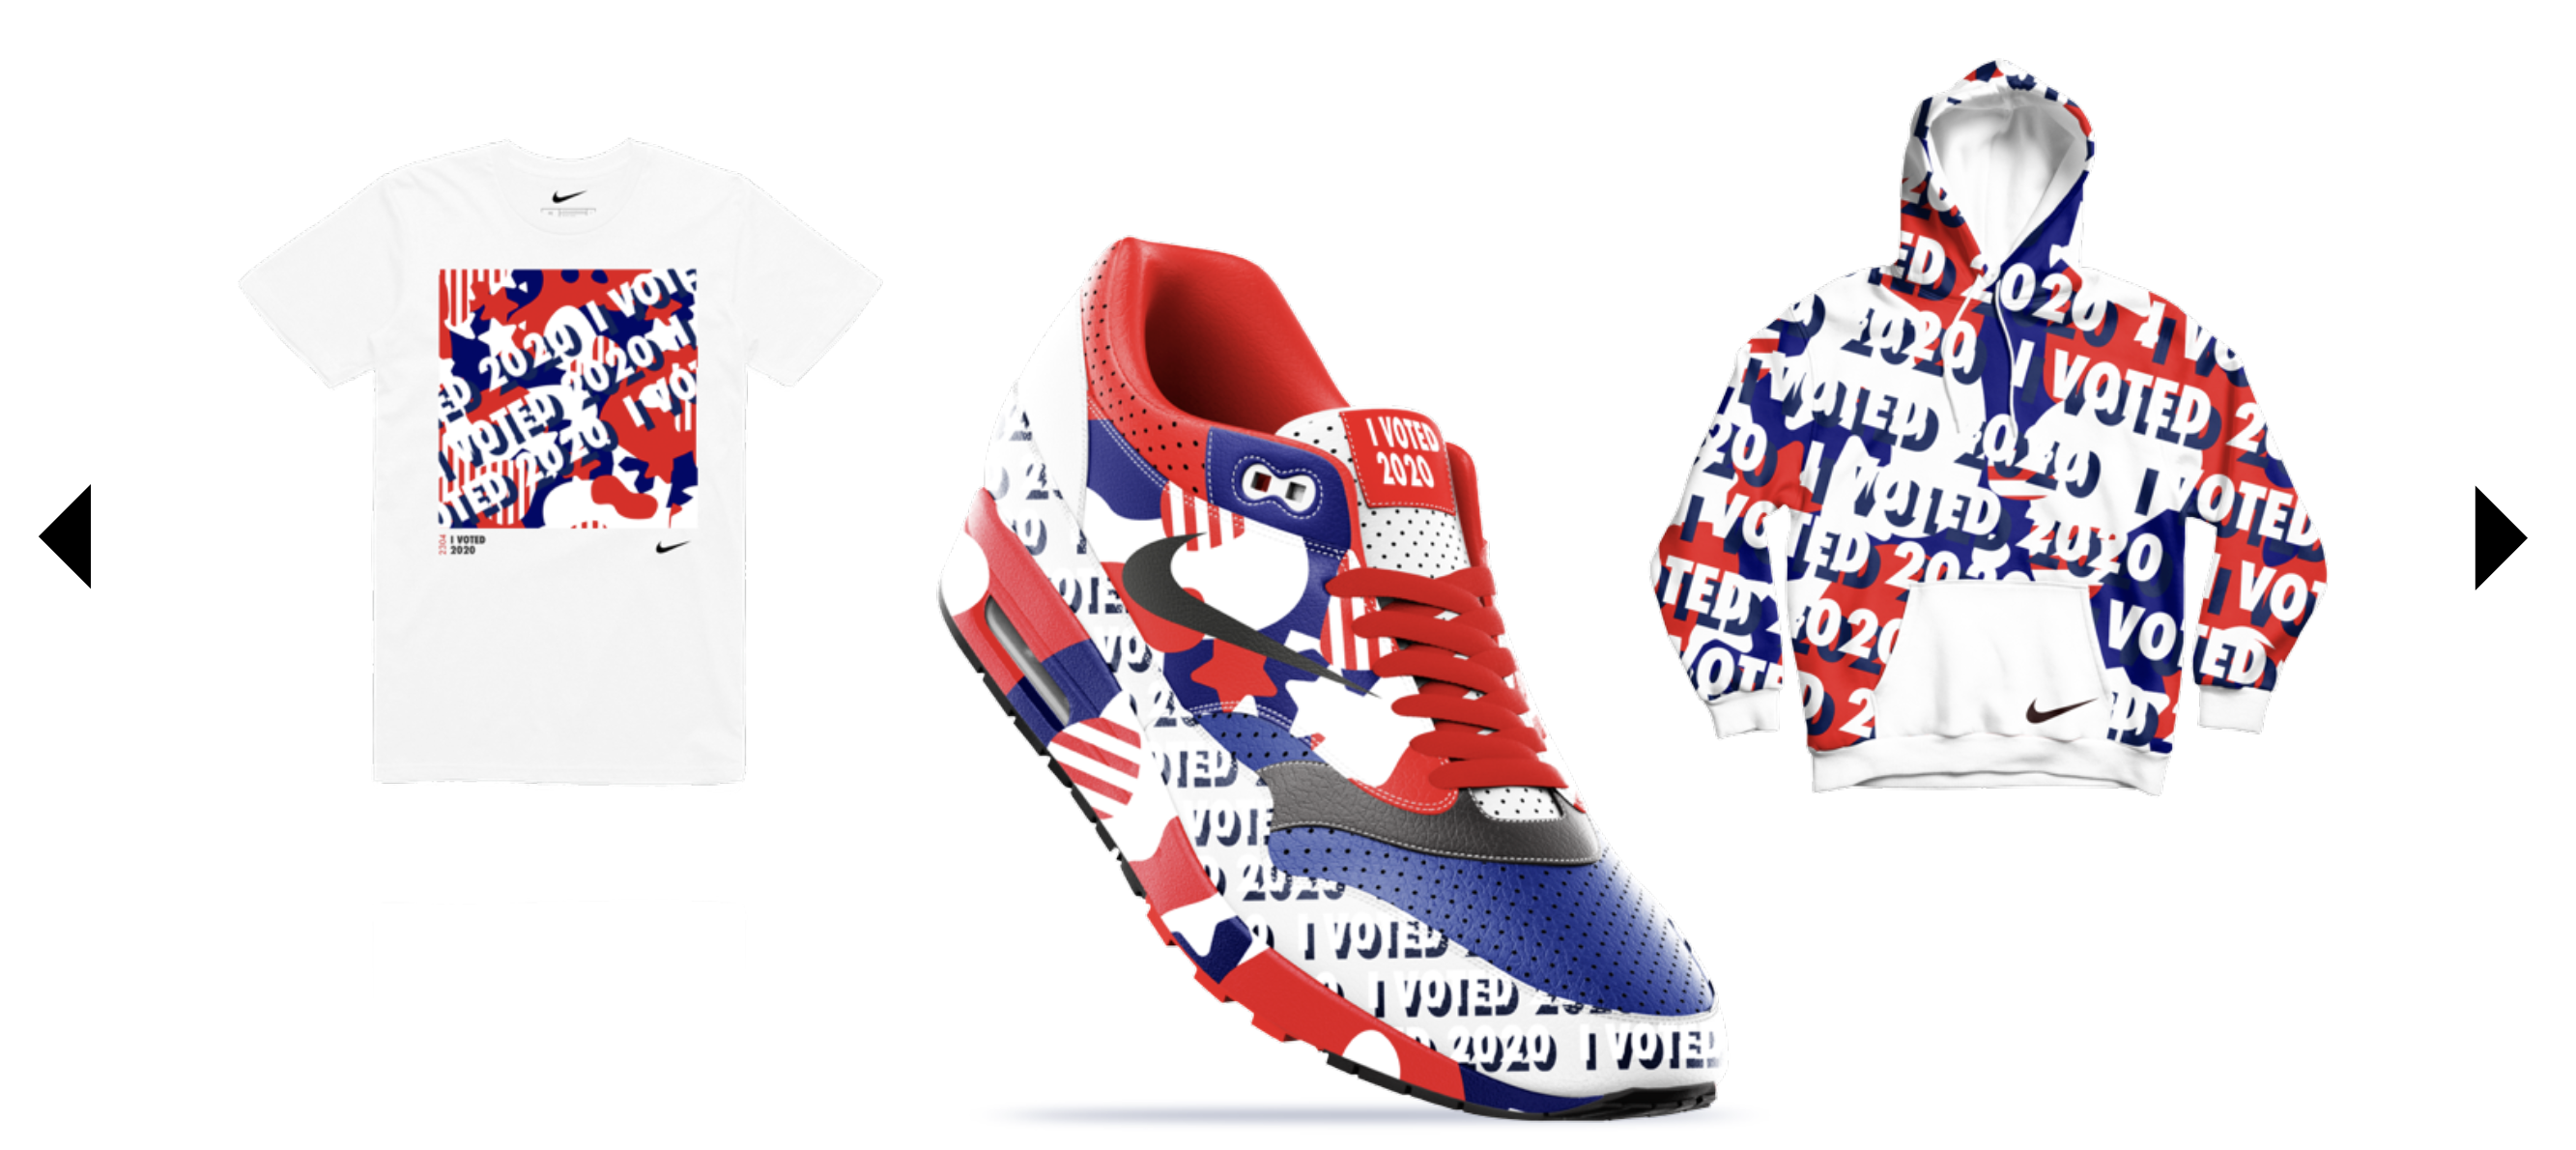 line_Ivoted_nike